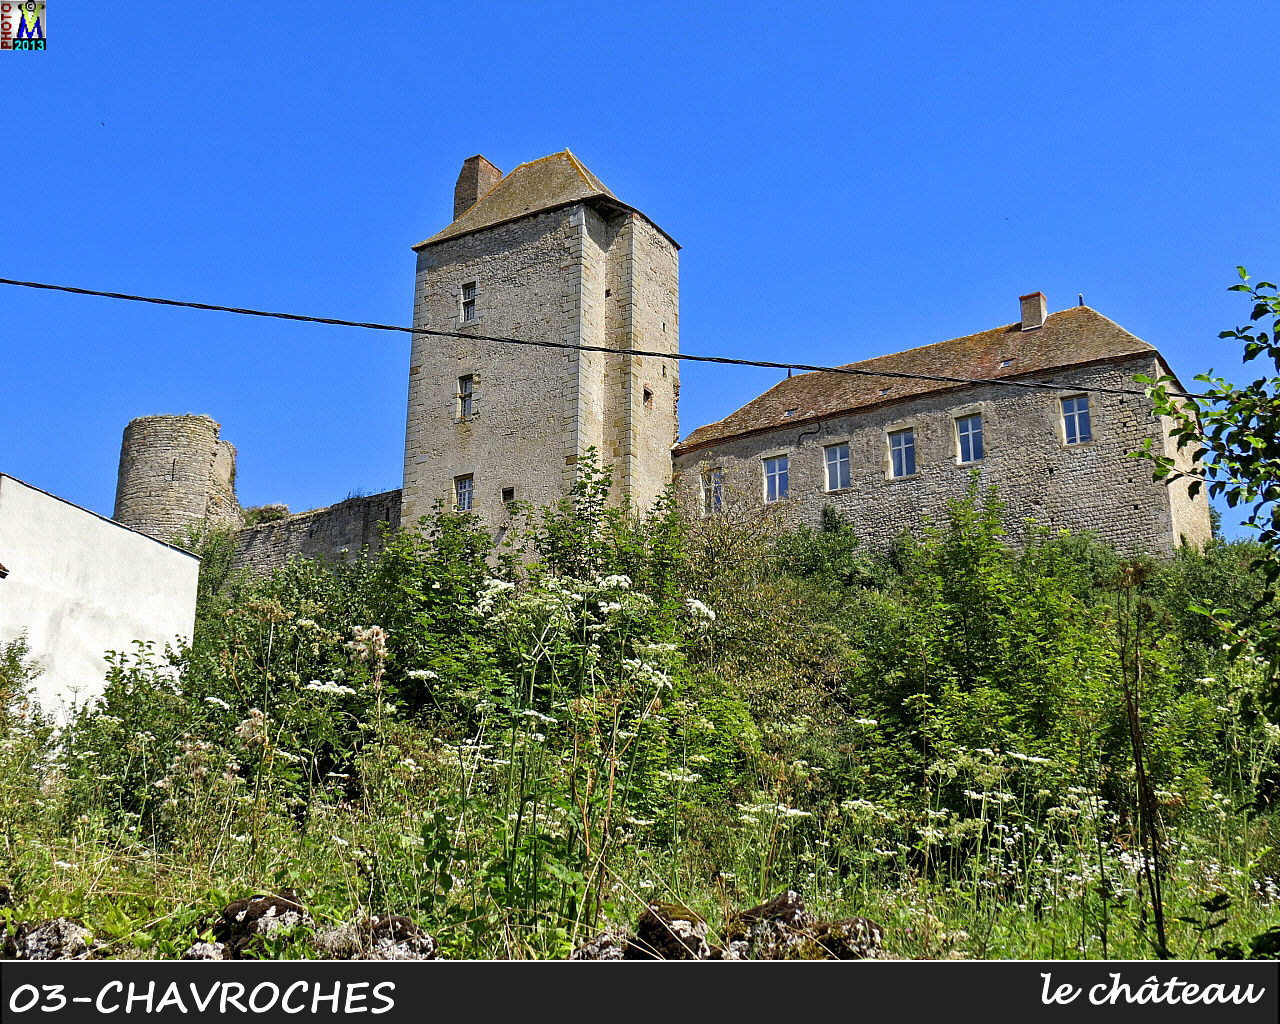 03CHAVROCHES_chateau_100.jpg